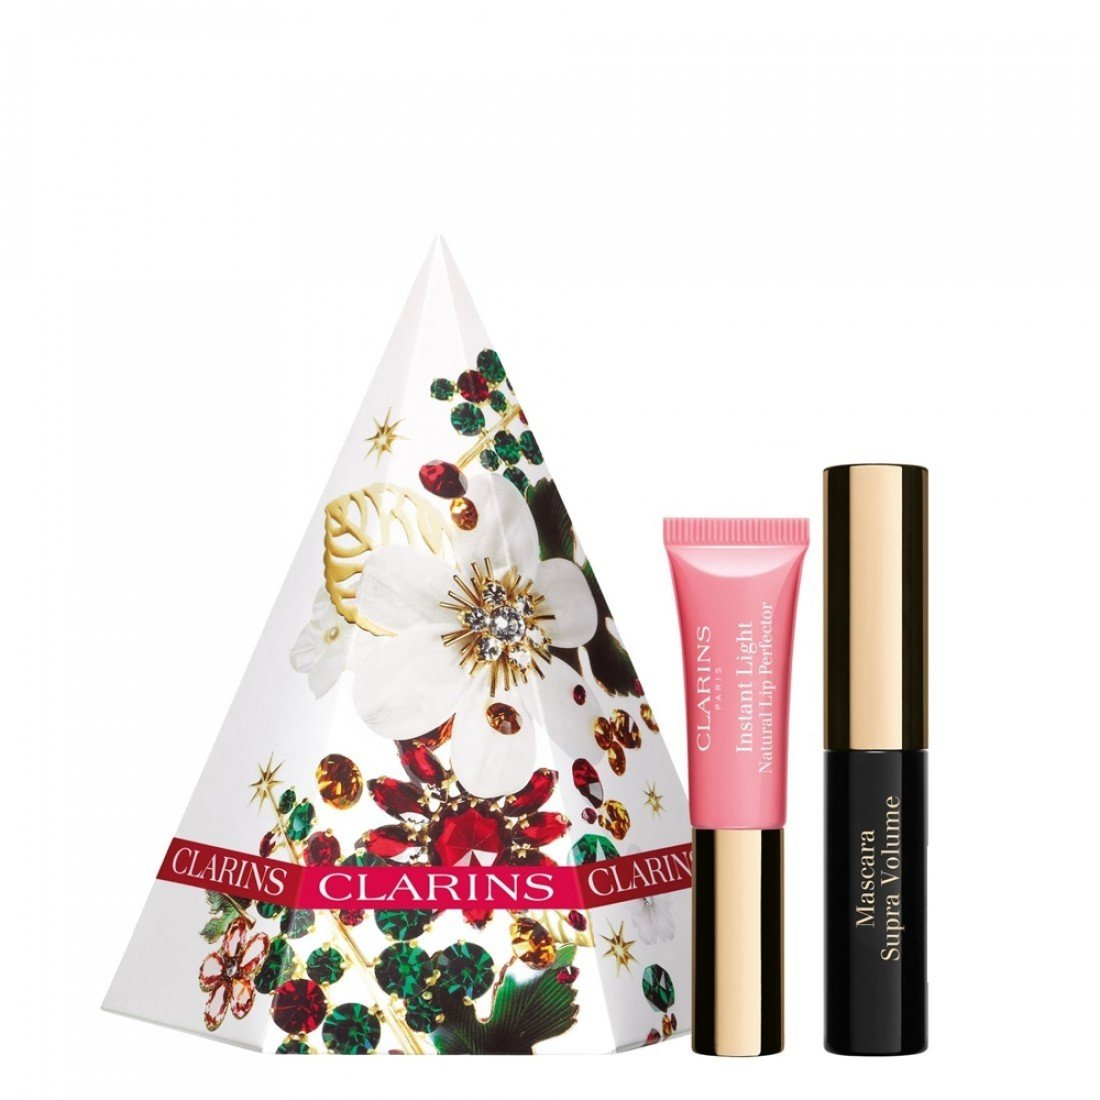 Clarins Festive Treats Eyes and Lips Gift Set 3.5ml Supra Volume Mascara + 5ml Light Natural Lip Perfector - 01 Rose Shimmer 00054